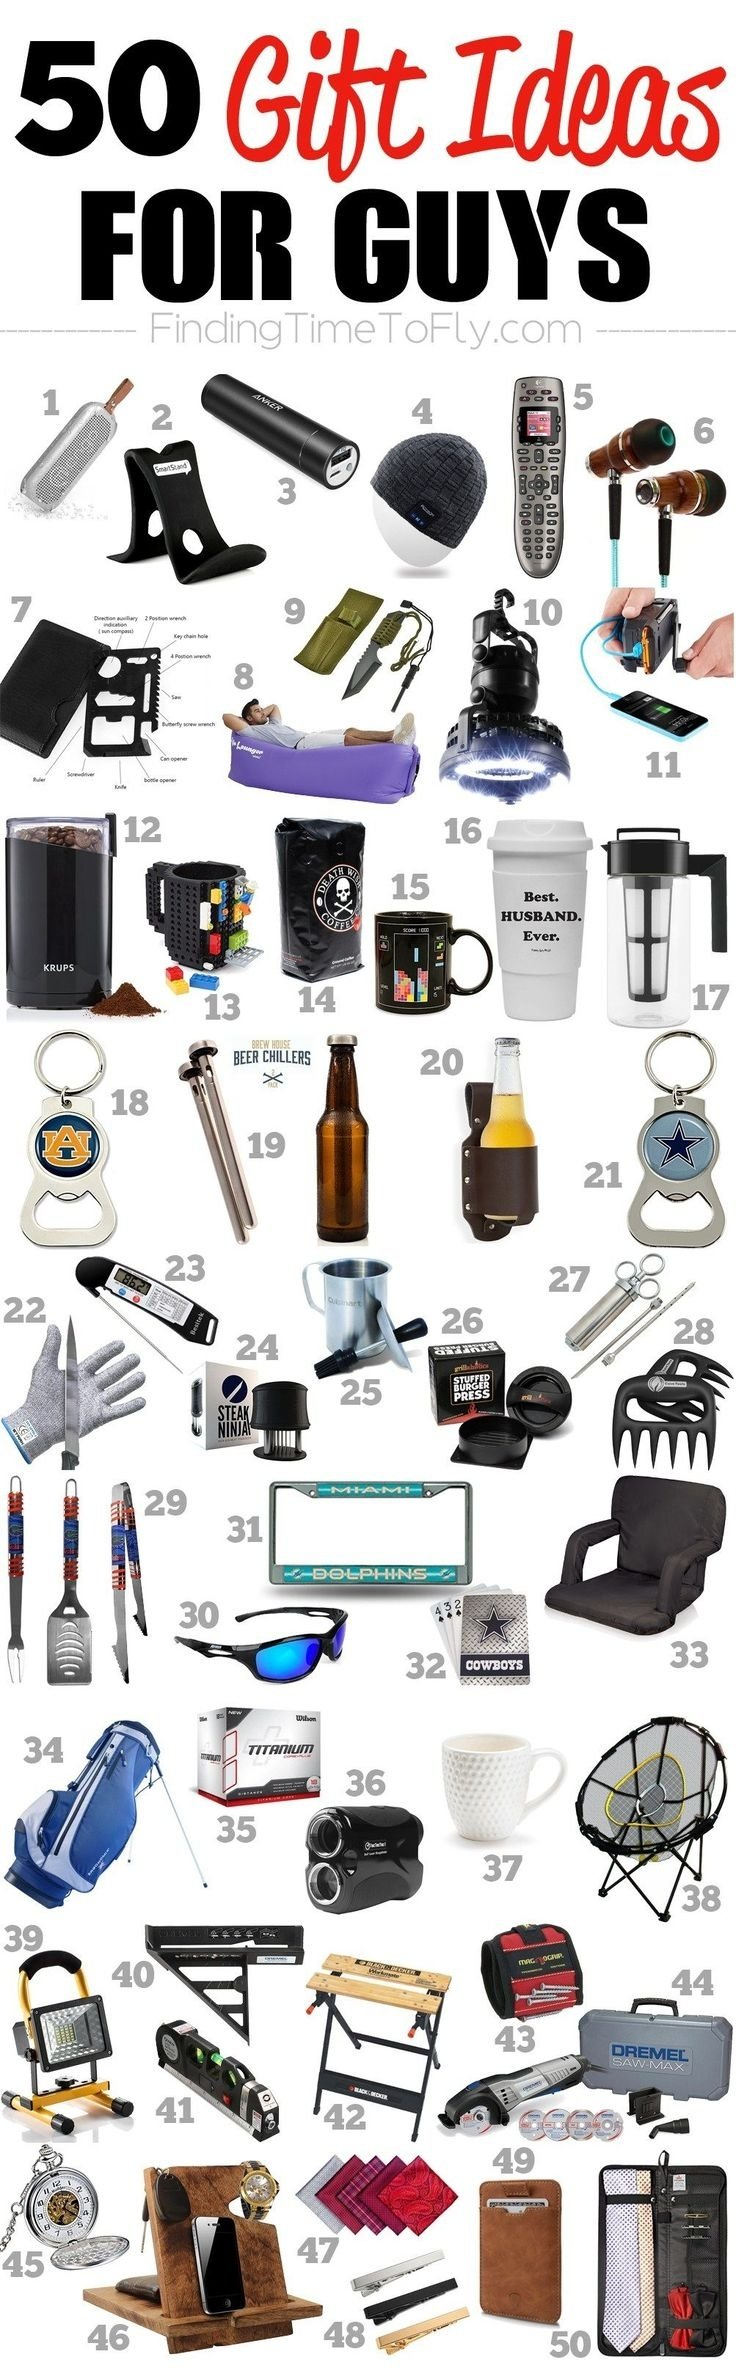 77 best male teacher gift ideas images on pinterest | gift ideas